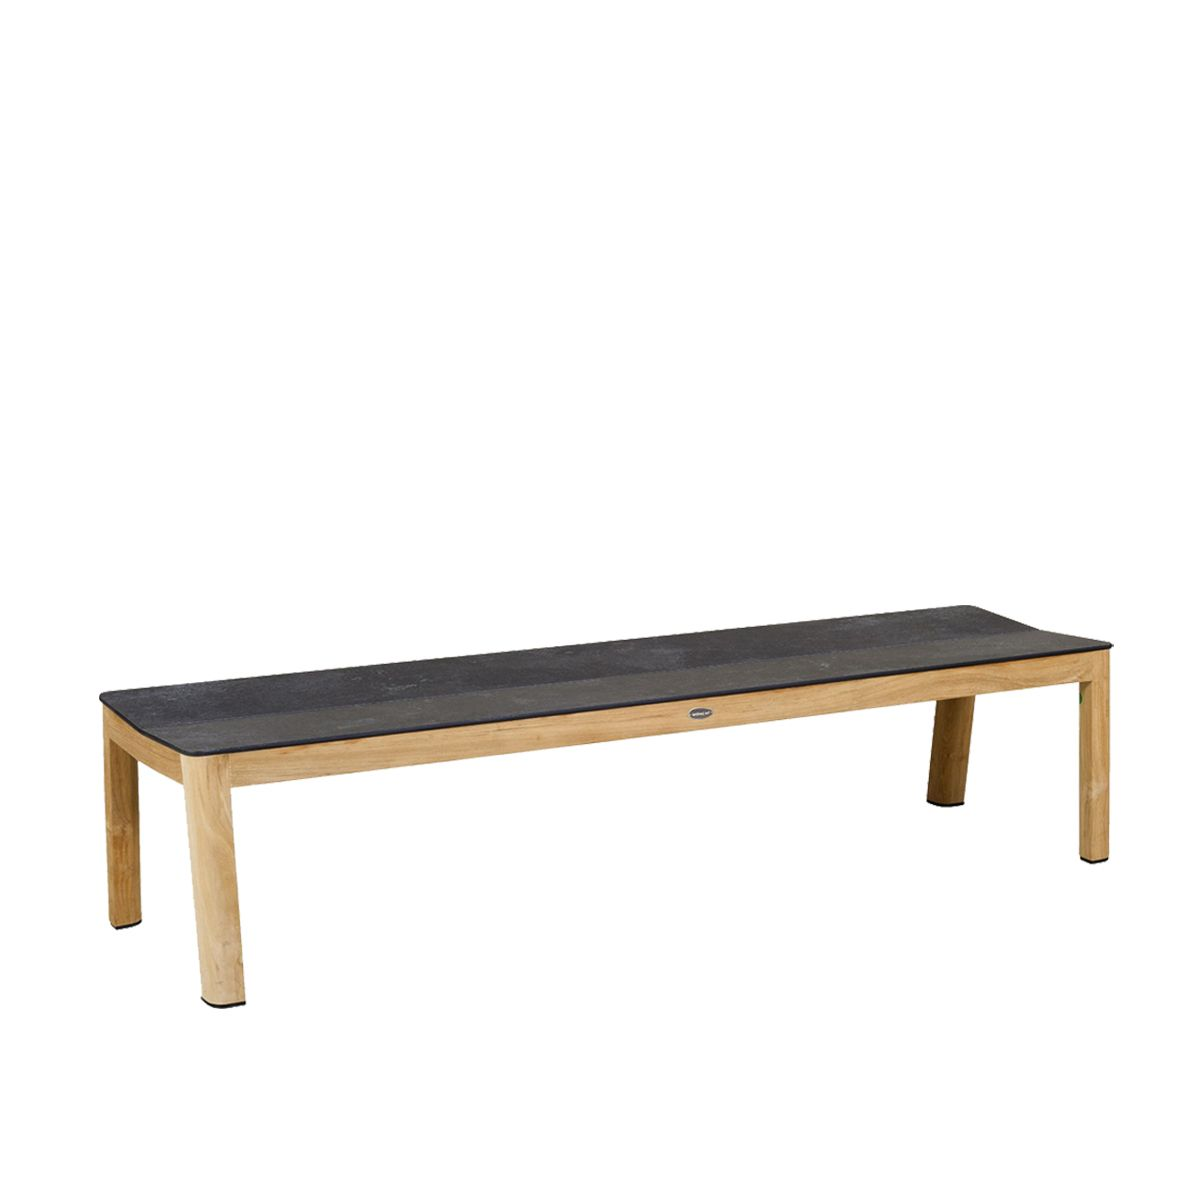 Banc de table large tekura Table de jardin avec banc attenant